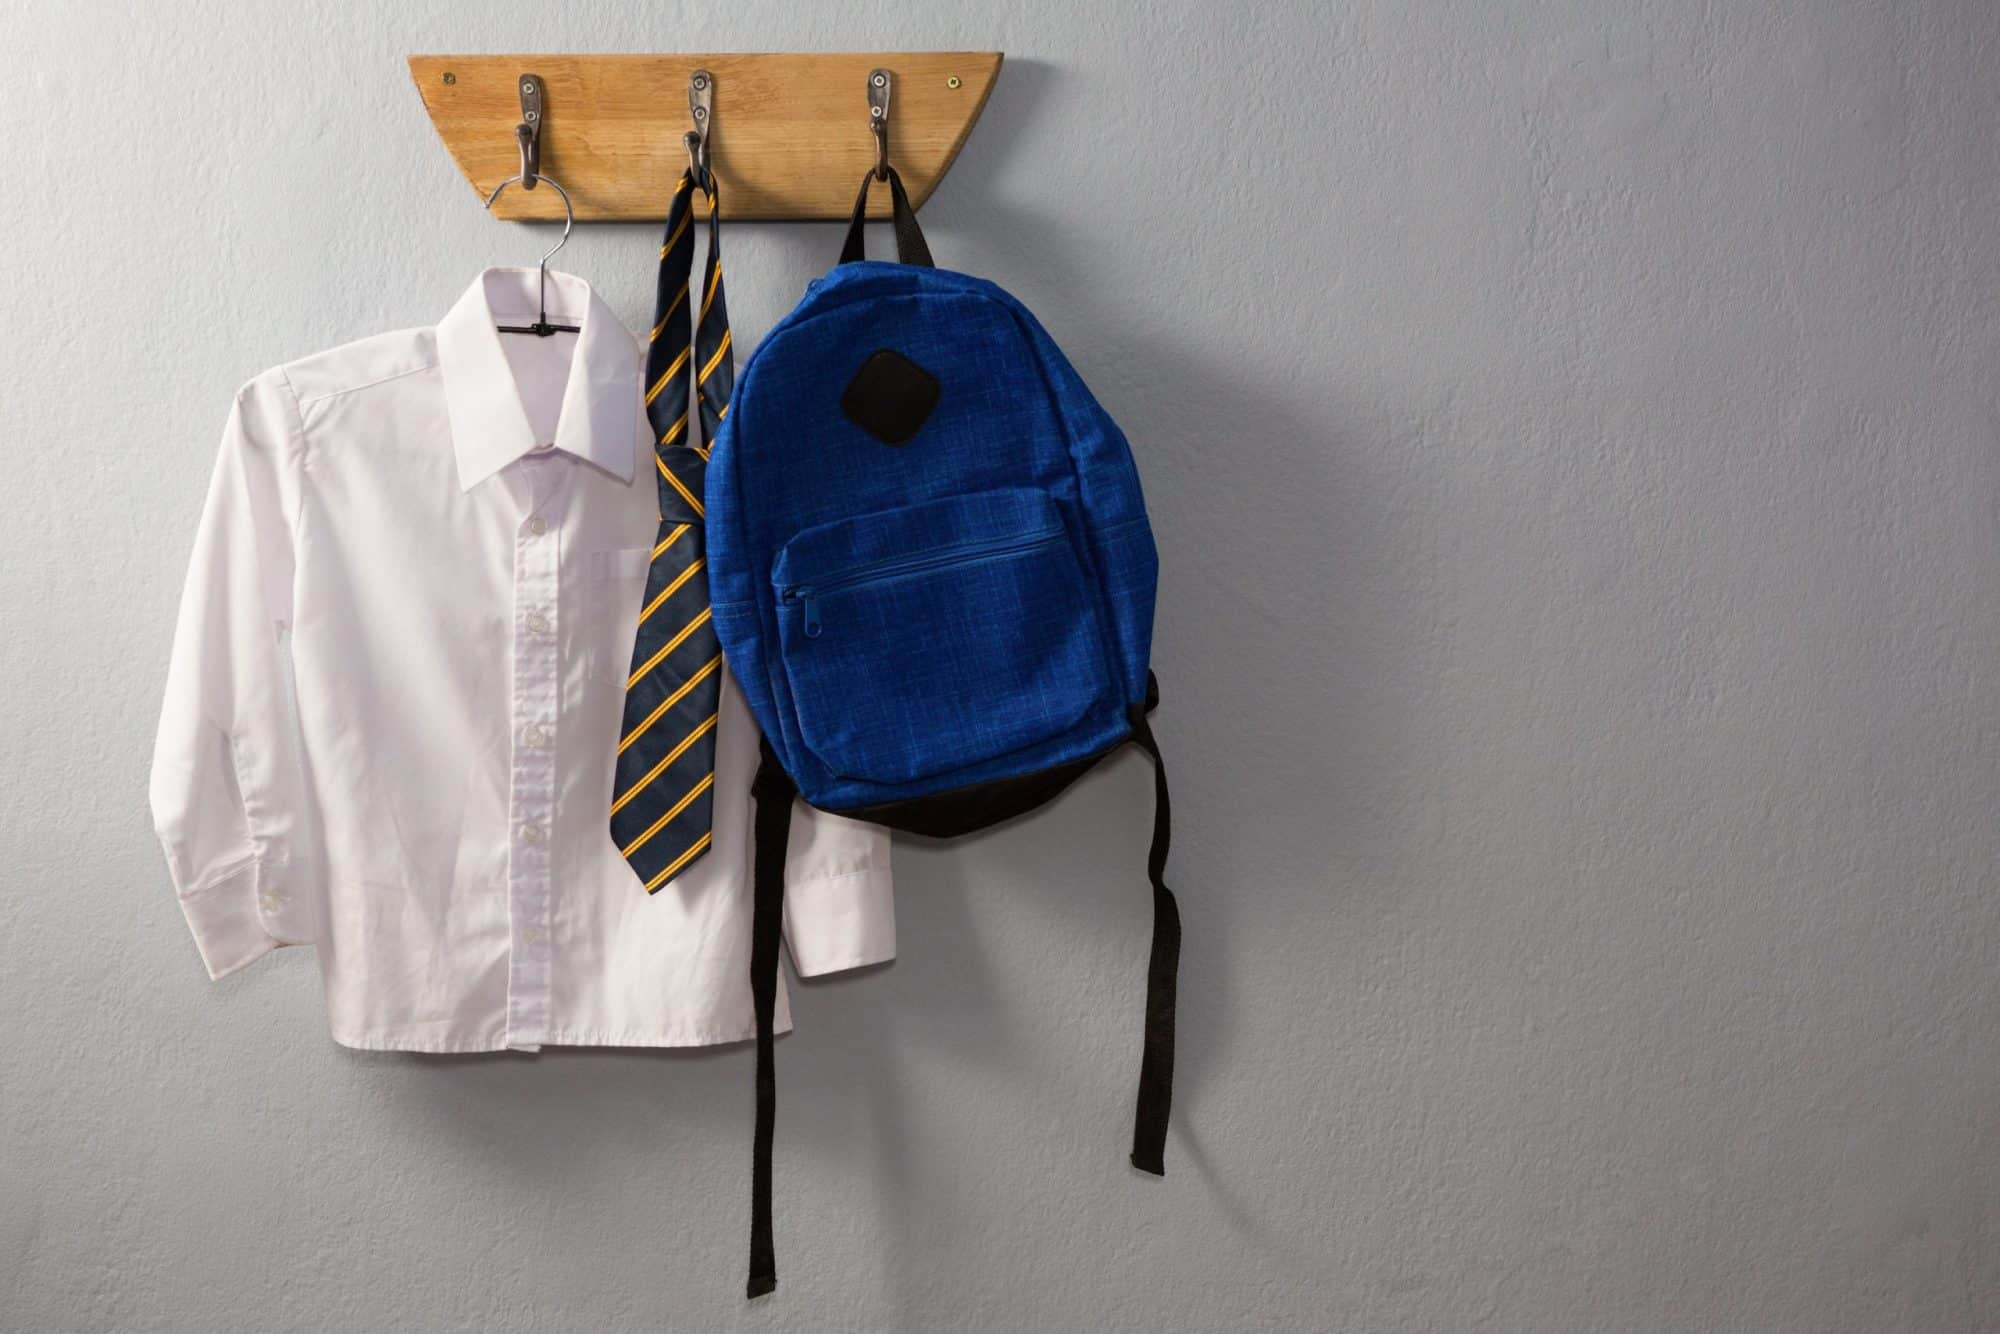 school uniforms save money